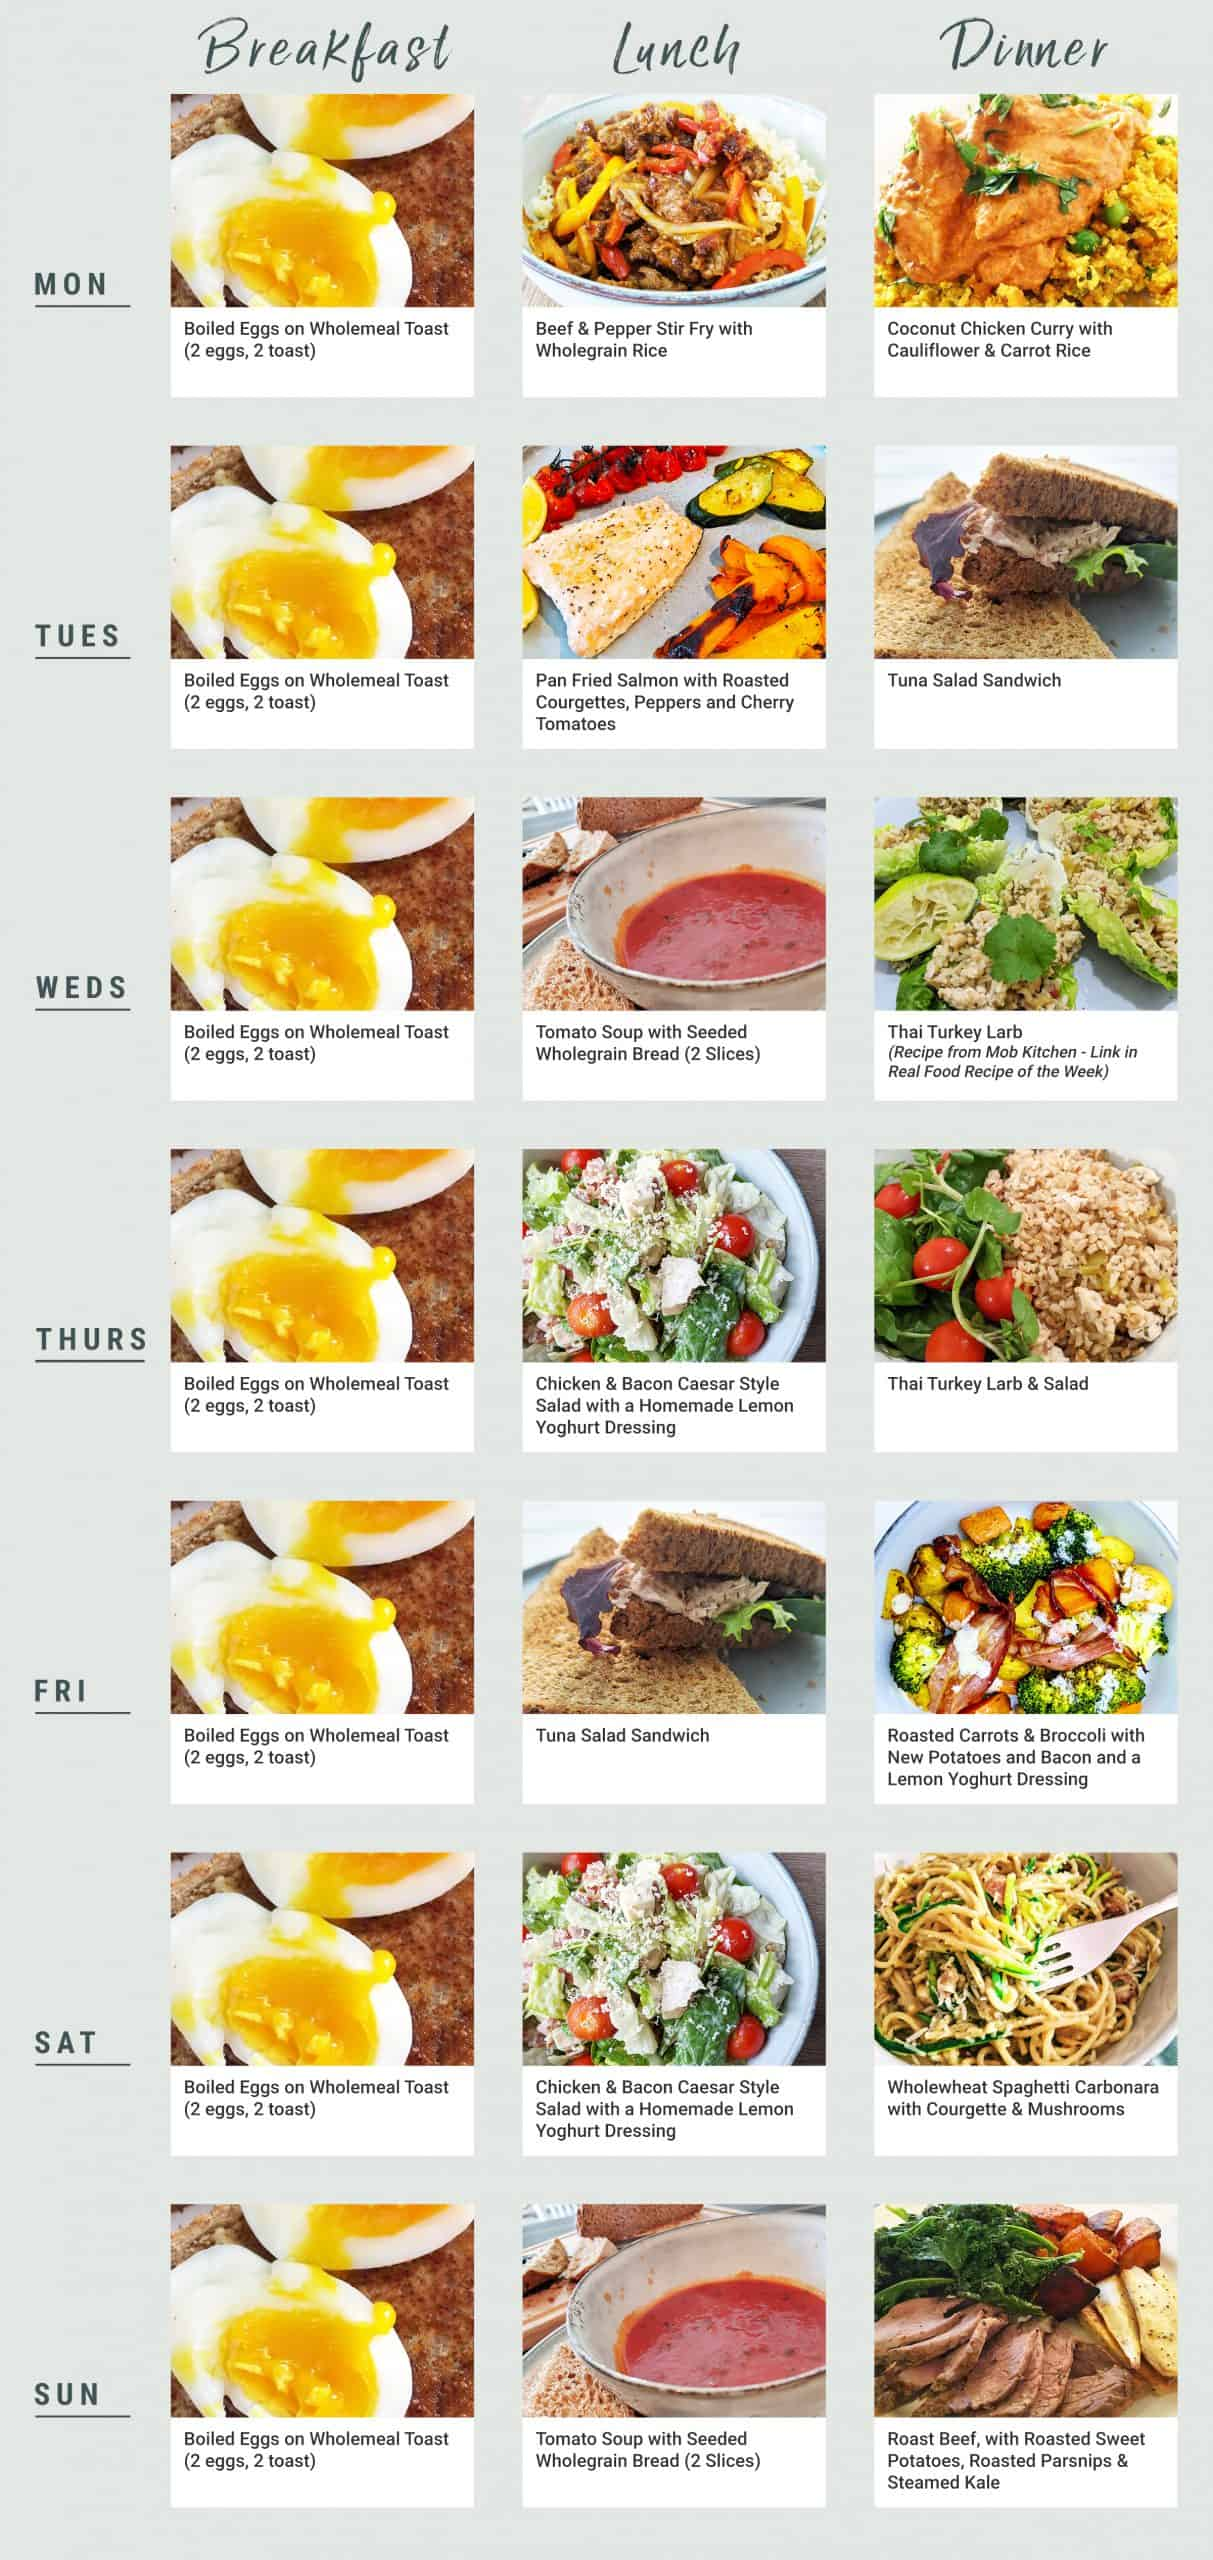 Monday to Friday Meal Planner